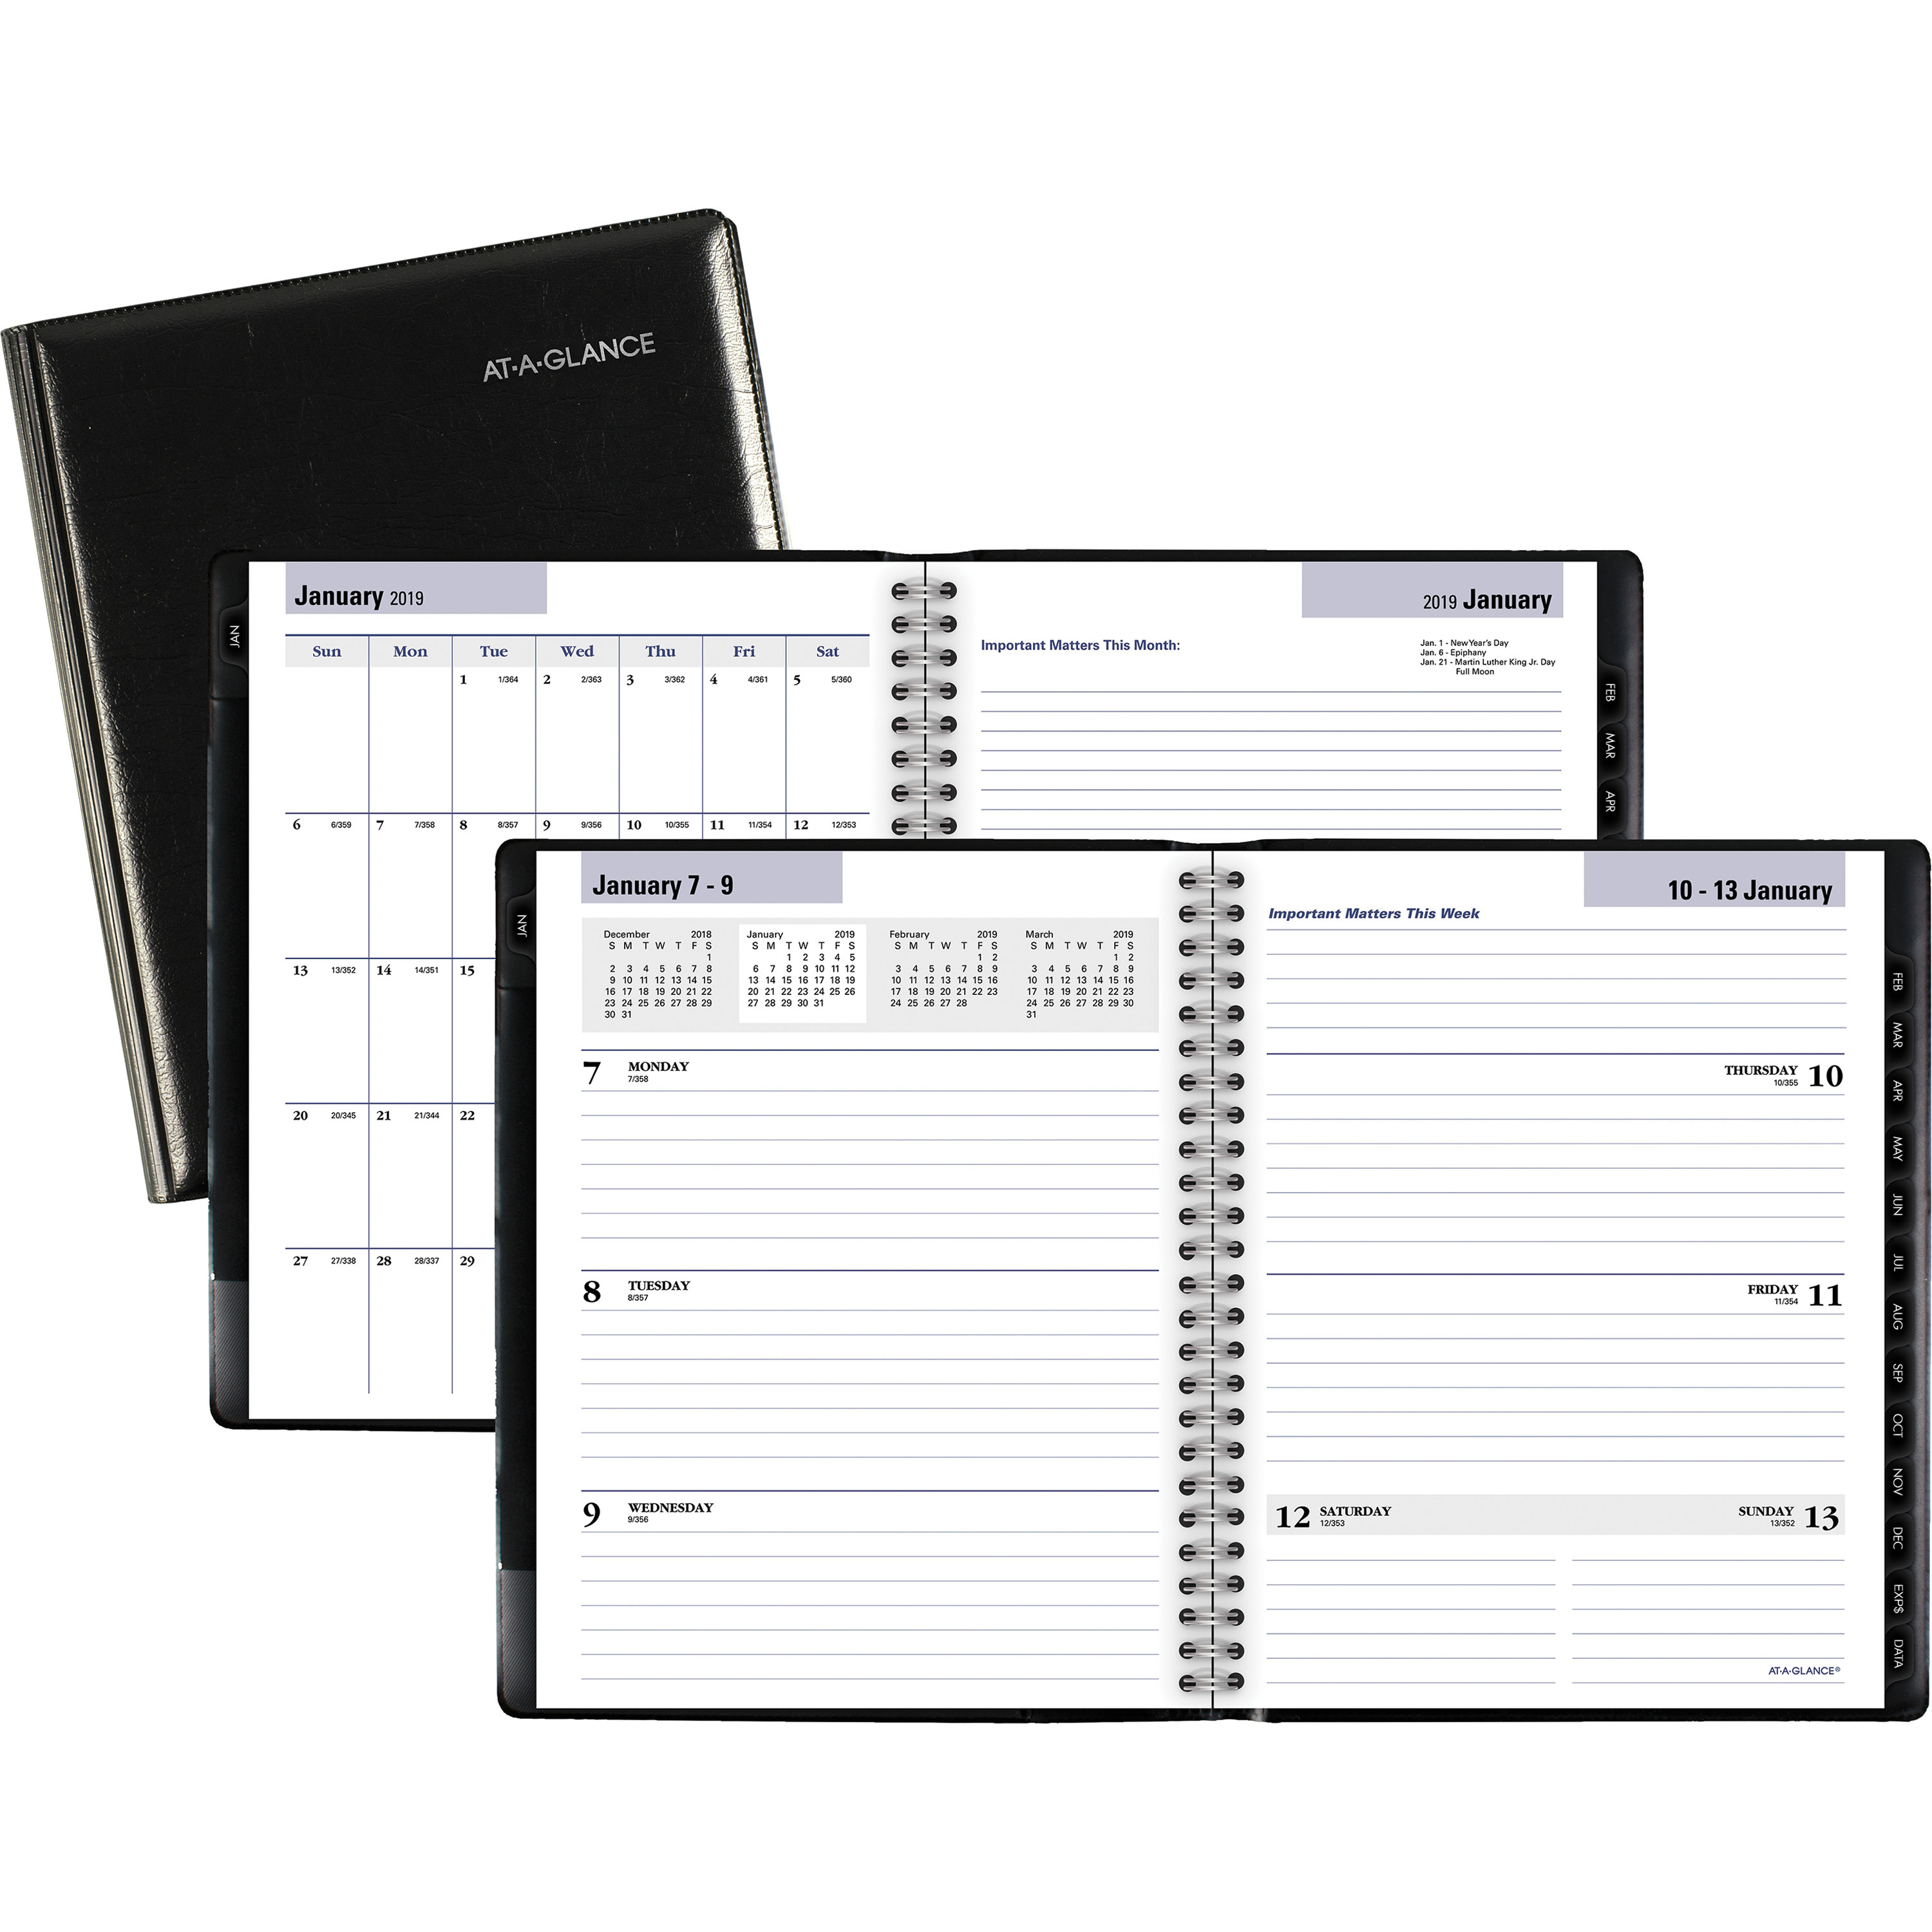 At-A-Glance DayMinder Weekly/Monthly Planner